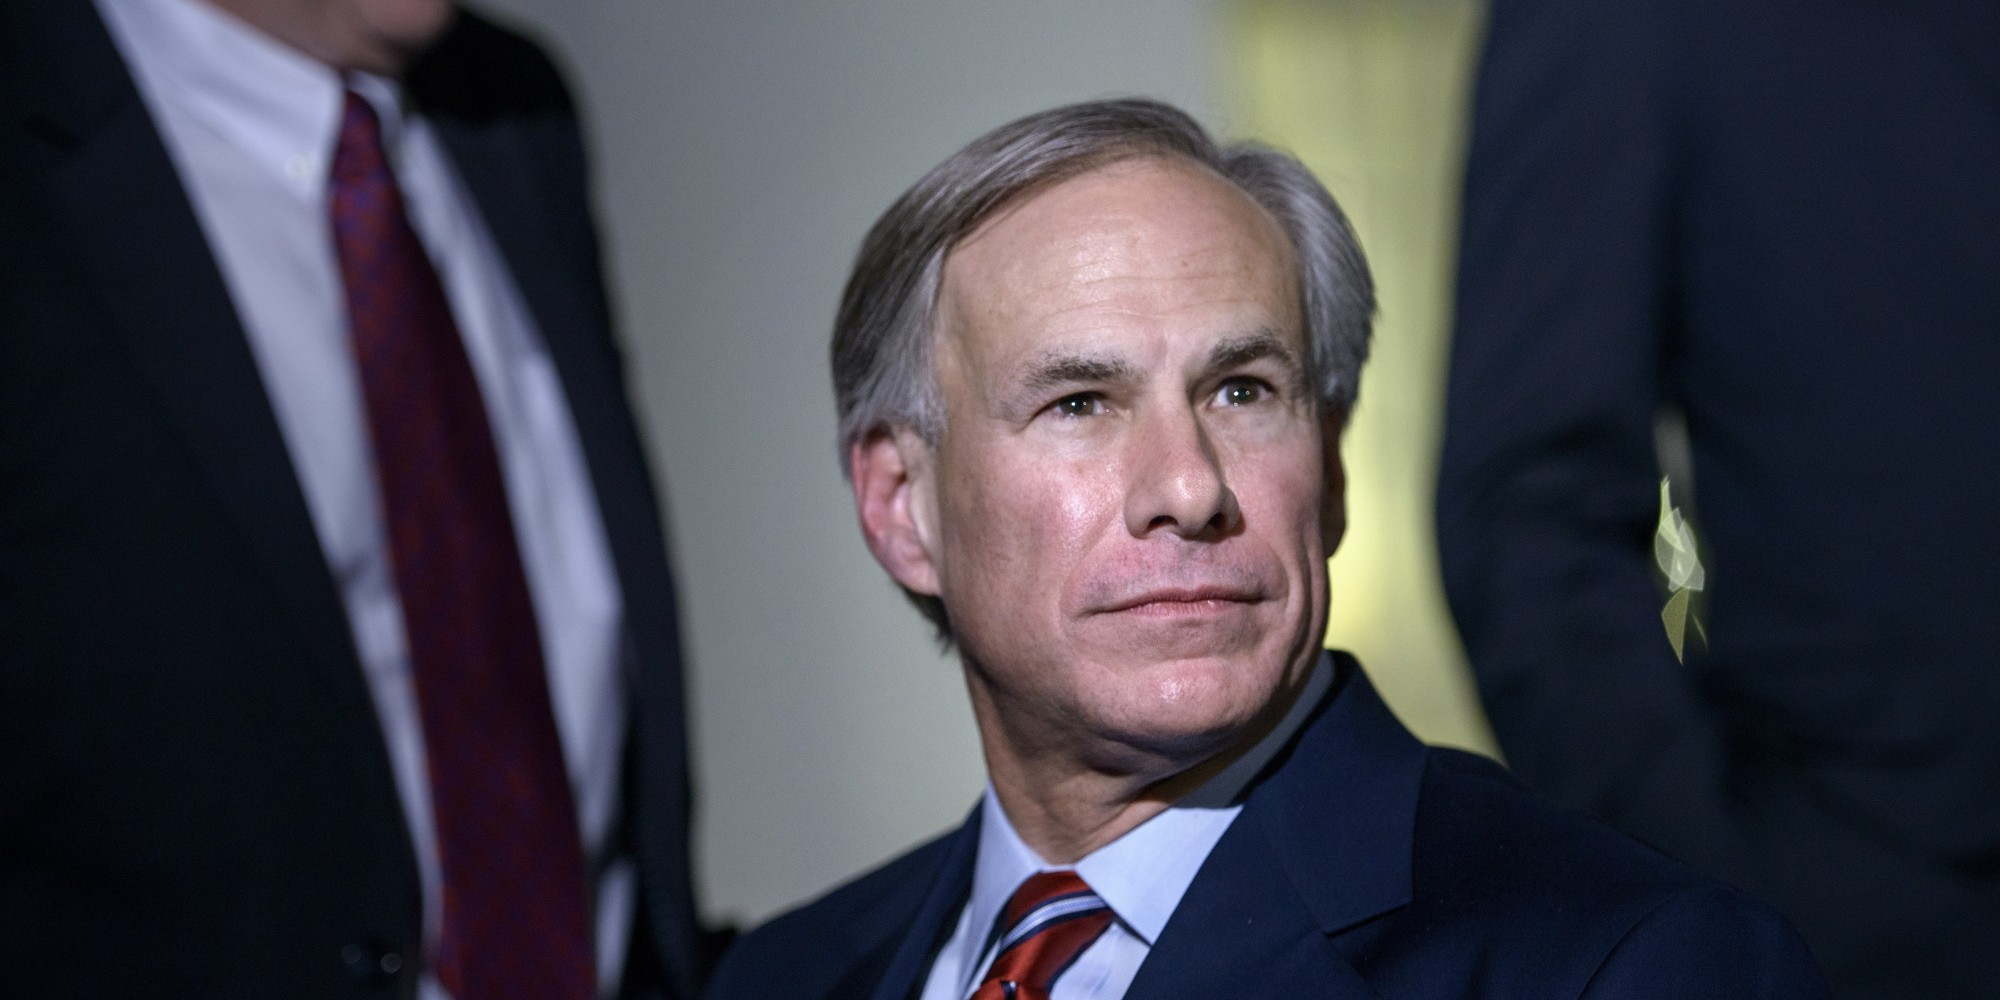 greg abbott Gov greg abbott urges president trump to implement a us trade policy that won't hurt the lone star state's economic growth.